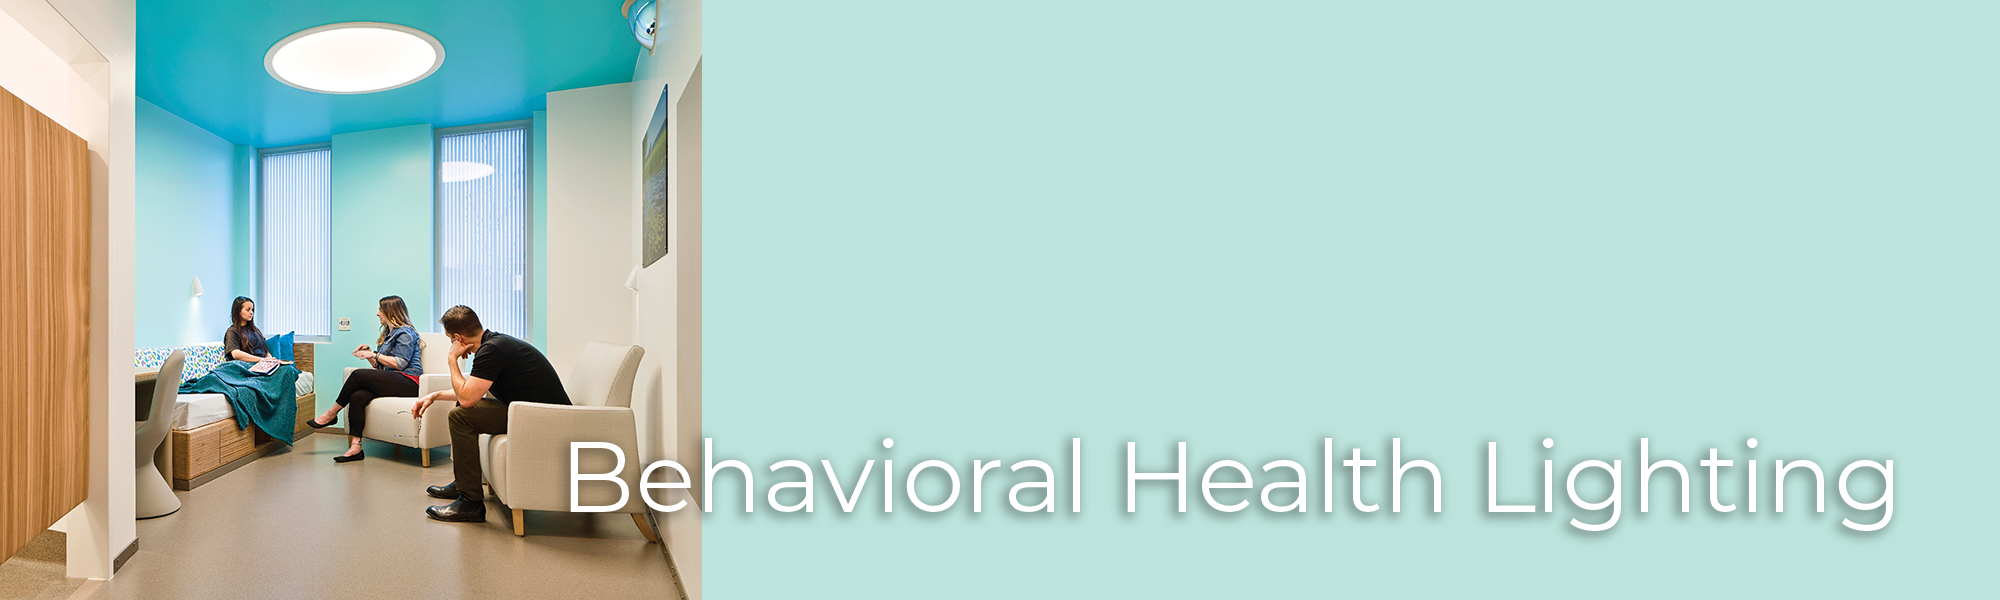 Behavioral health lighting banner with patient room